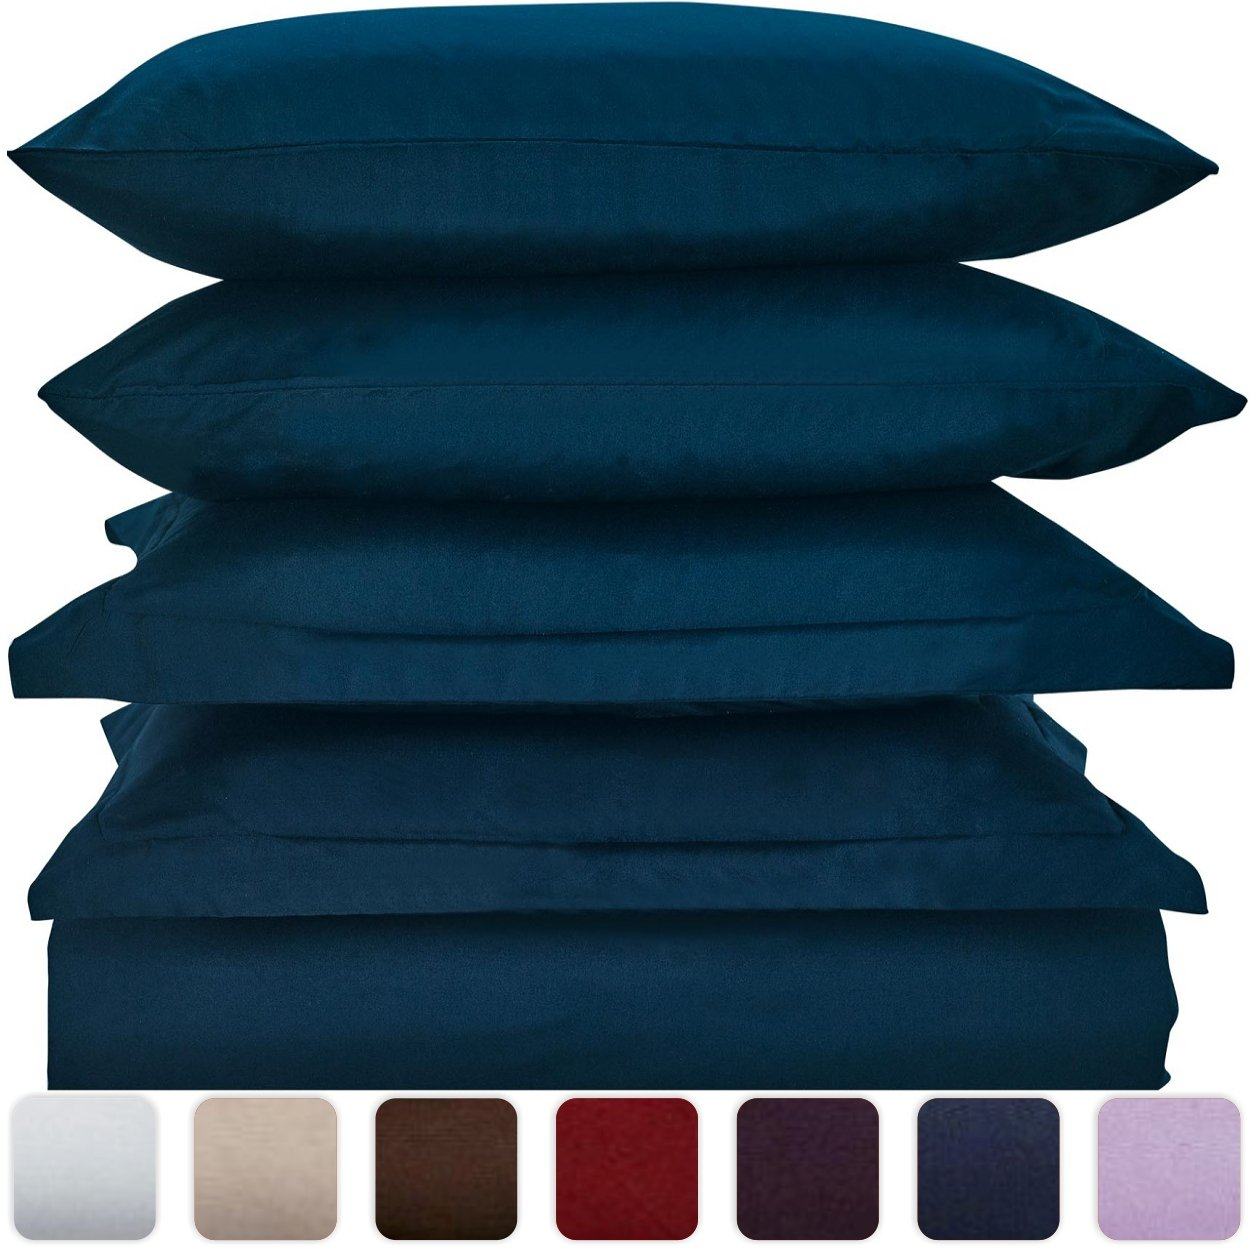 Mellanni Duvet Cover Set Royal-Blue - Double Brushed Microfiber 1800 Bedding Collection with Extra Pillowcase - Wrinkle, Fade, Stain Resistant - Hypoallergenic - 3 Piece (Twin/Twin XL, Royal Blue)